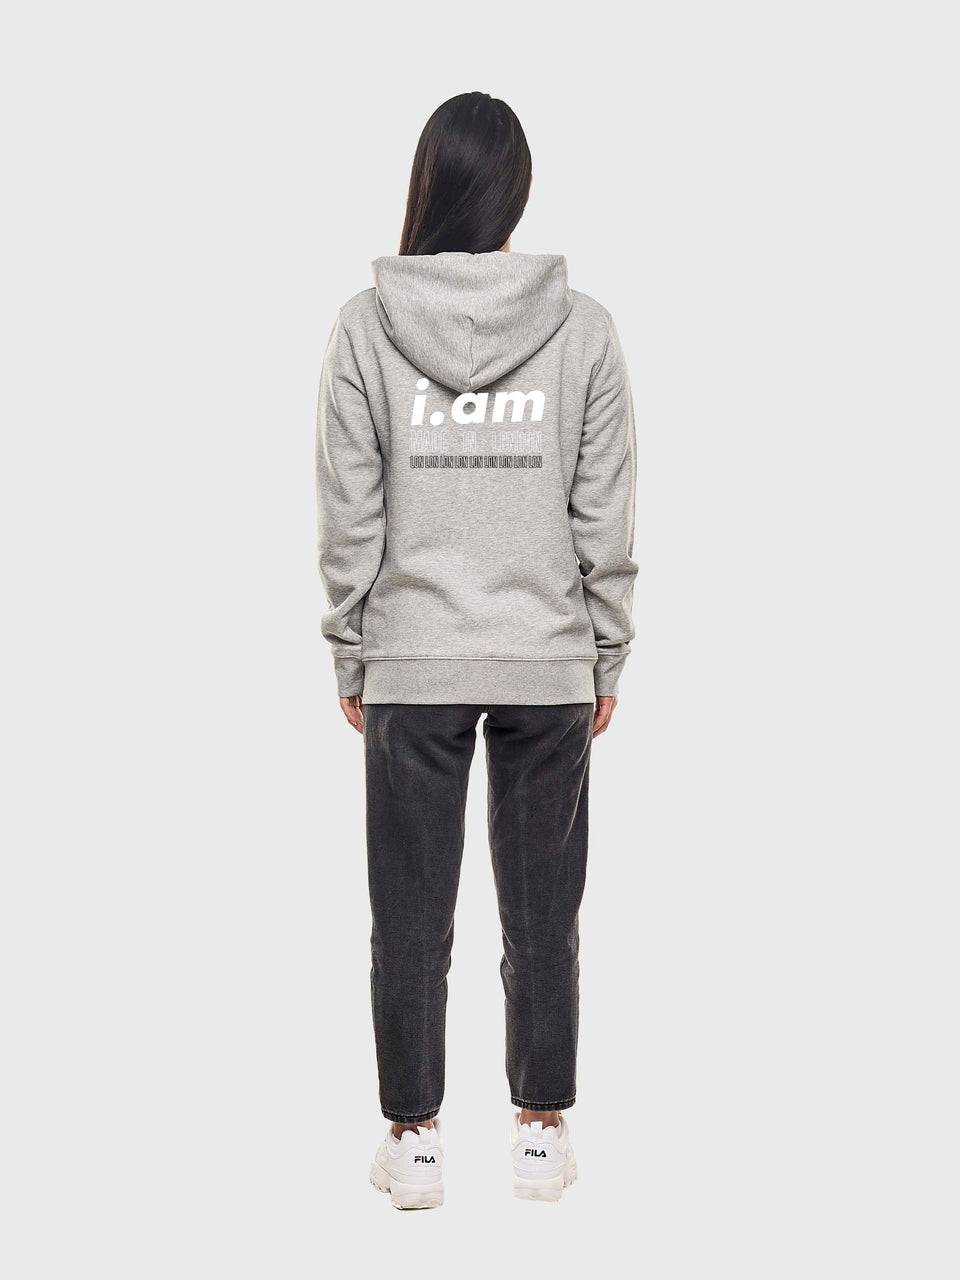 Made in London - Grey - Unisex zip up hoodie